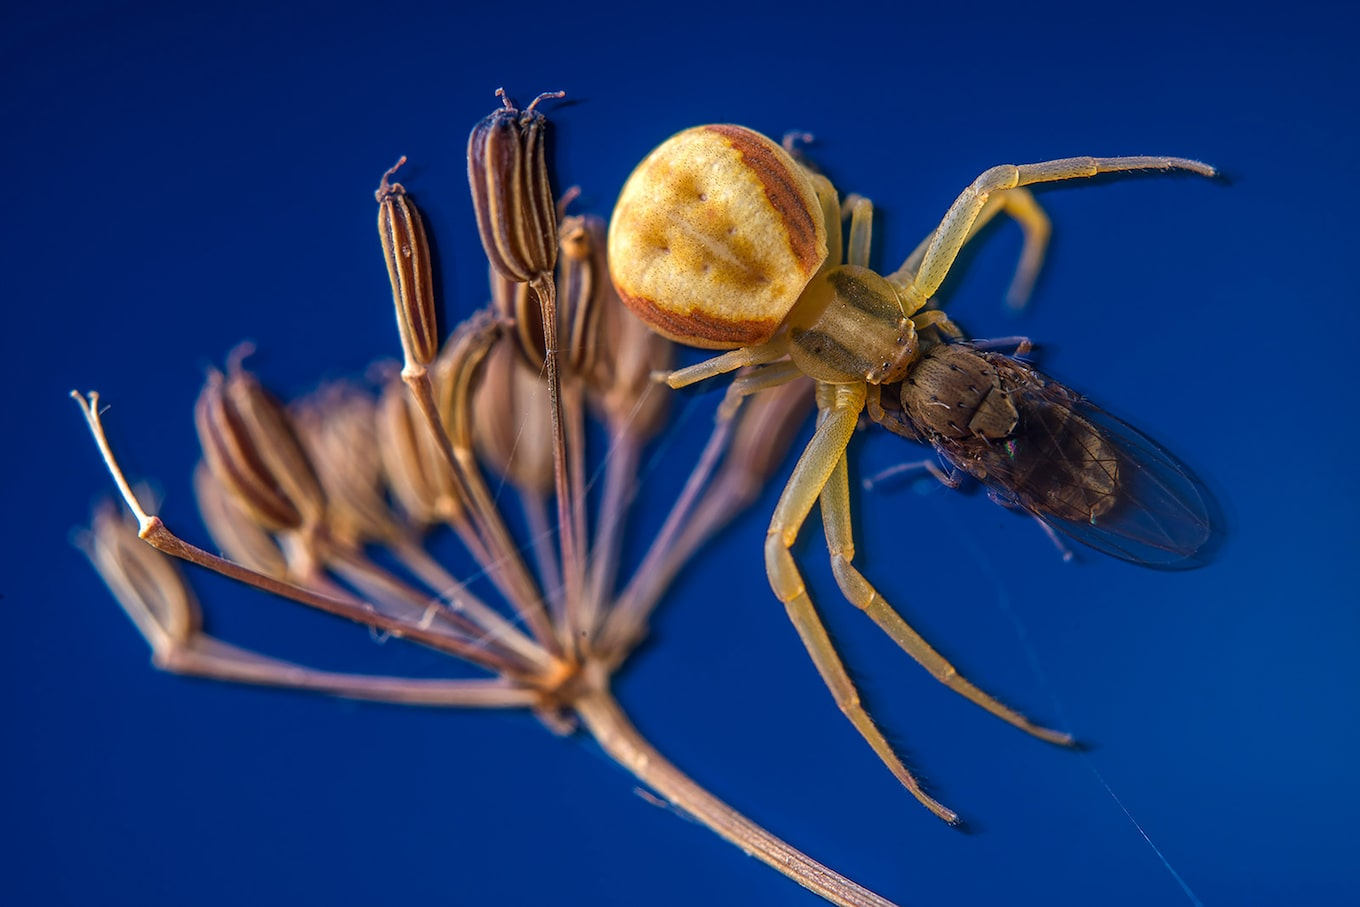 javier-aznar-sony-alpha-7RIII-extreme-close-up-of-spider-on-plant